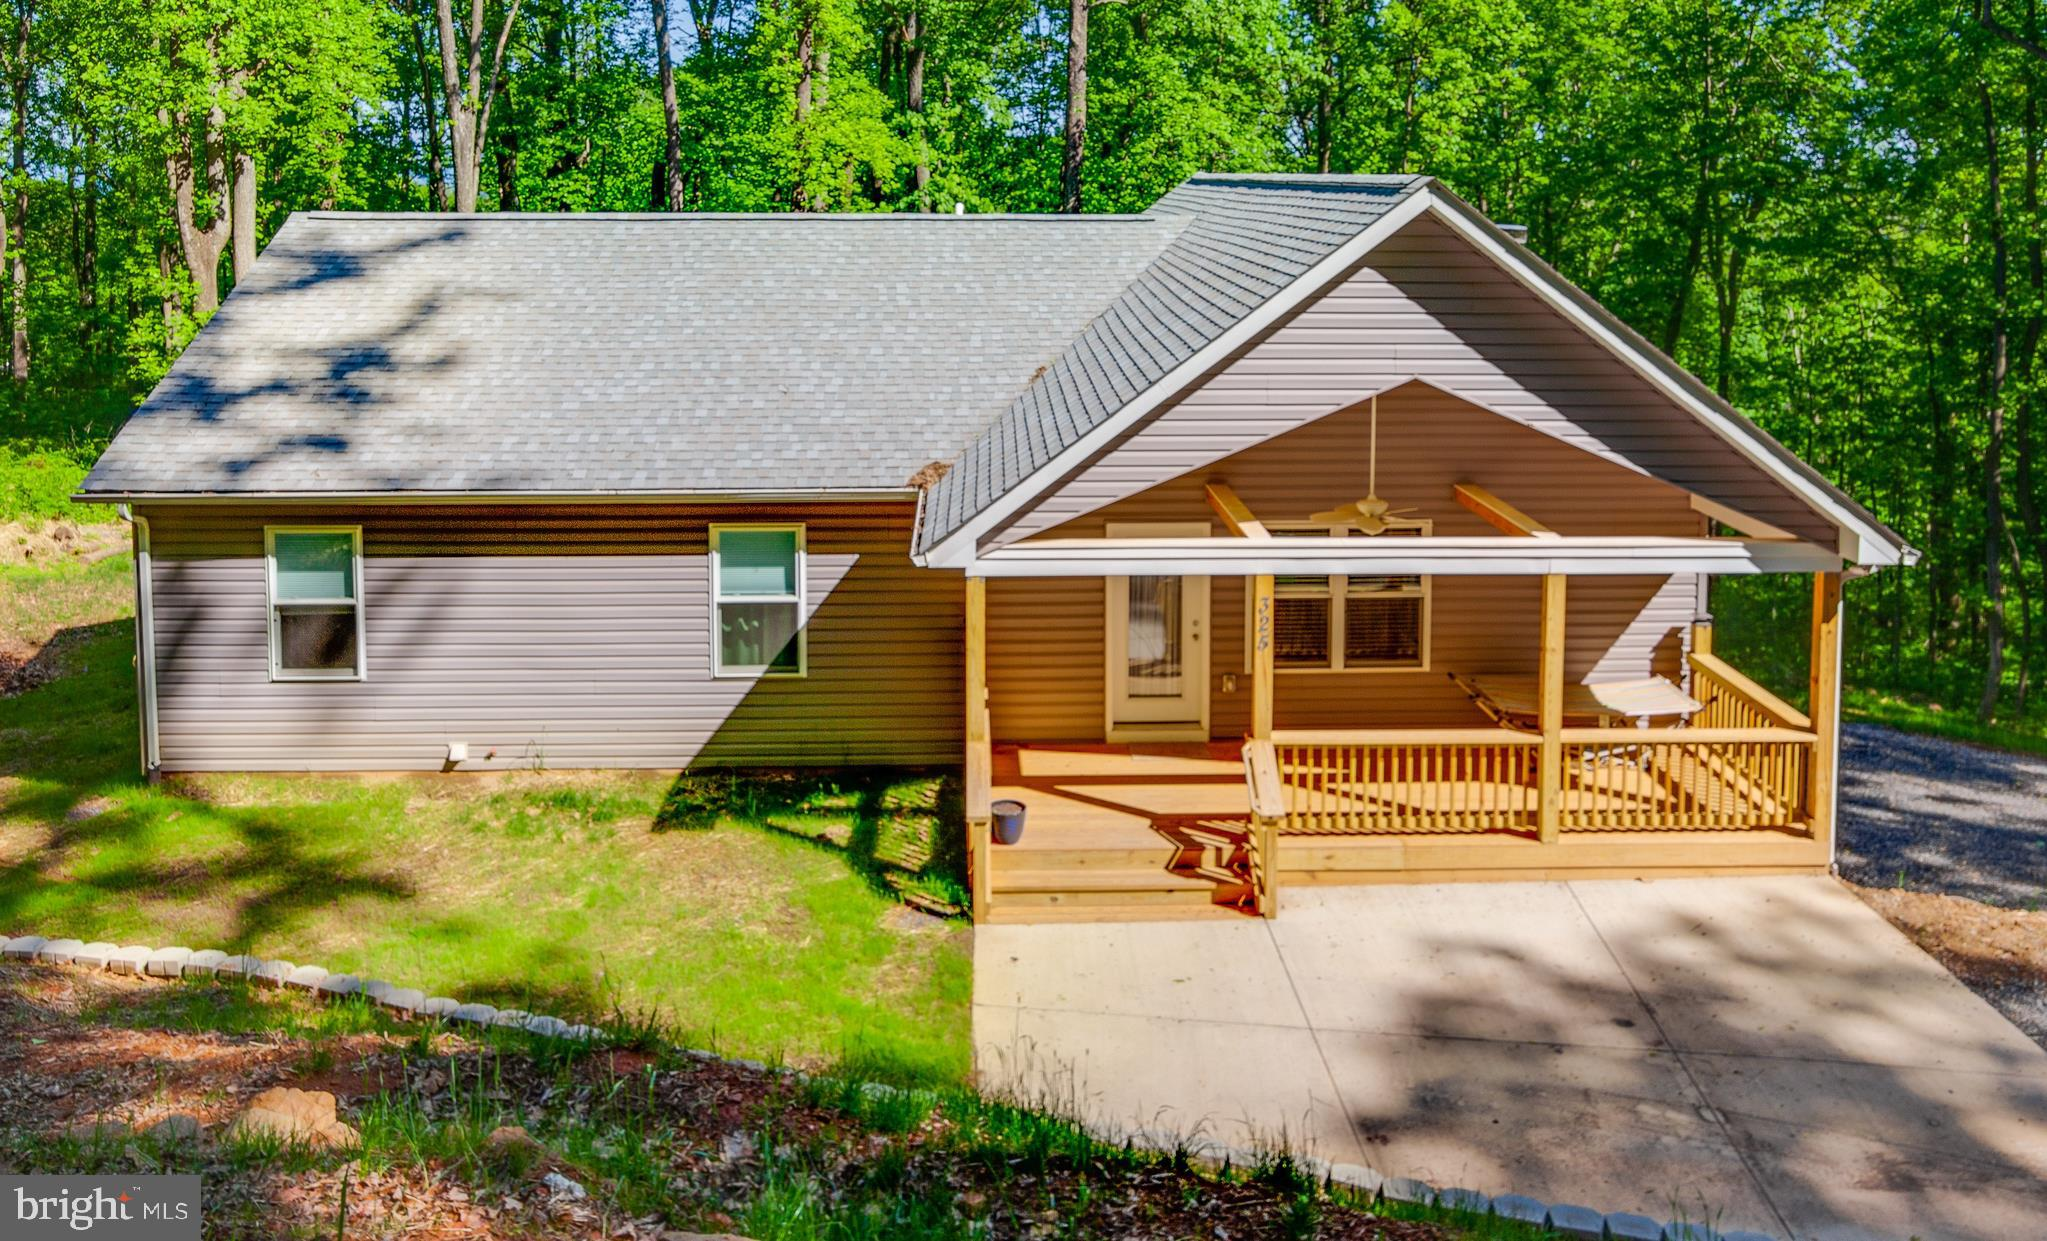 325 BLUE SKY ROAD, LINDEN, VA 22642